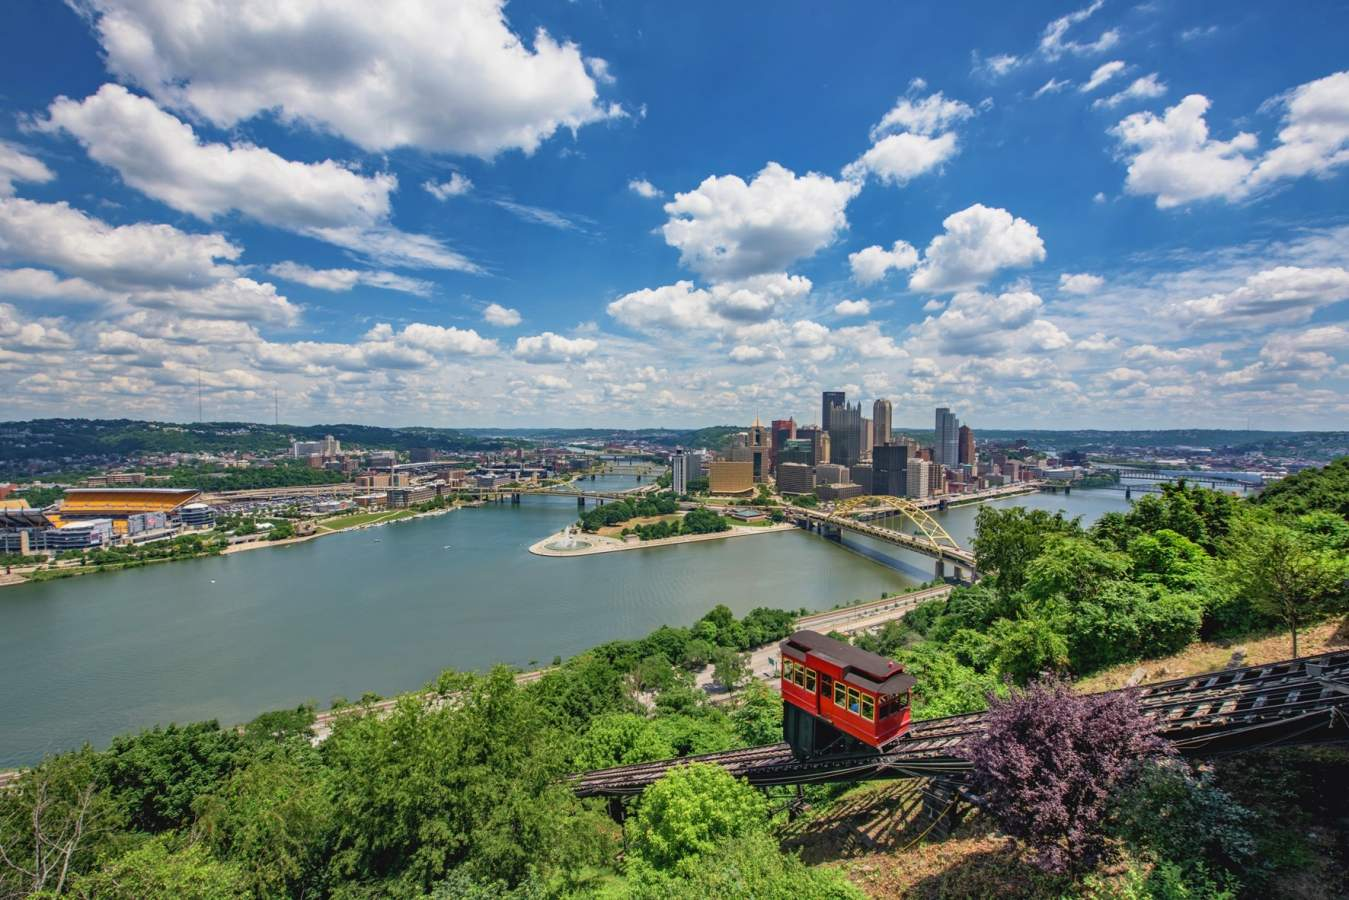 The Duquesne Incline and Pittsburgh skyline